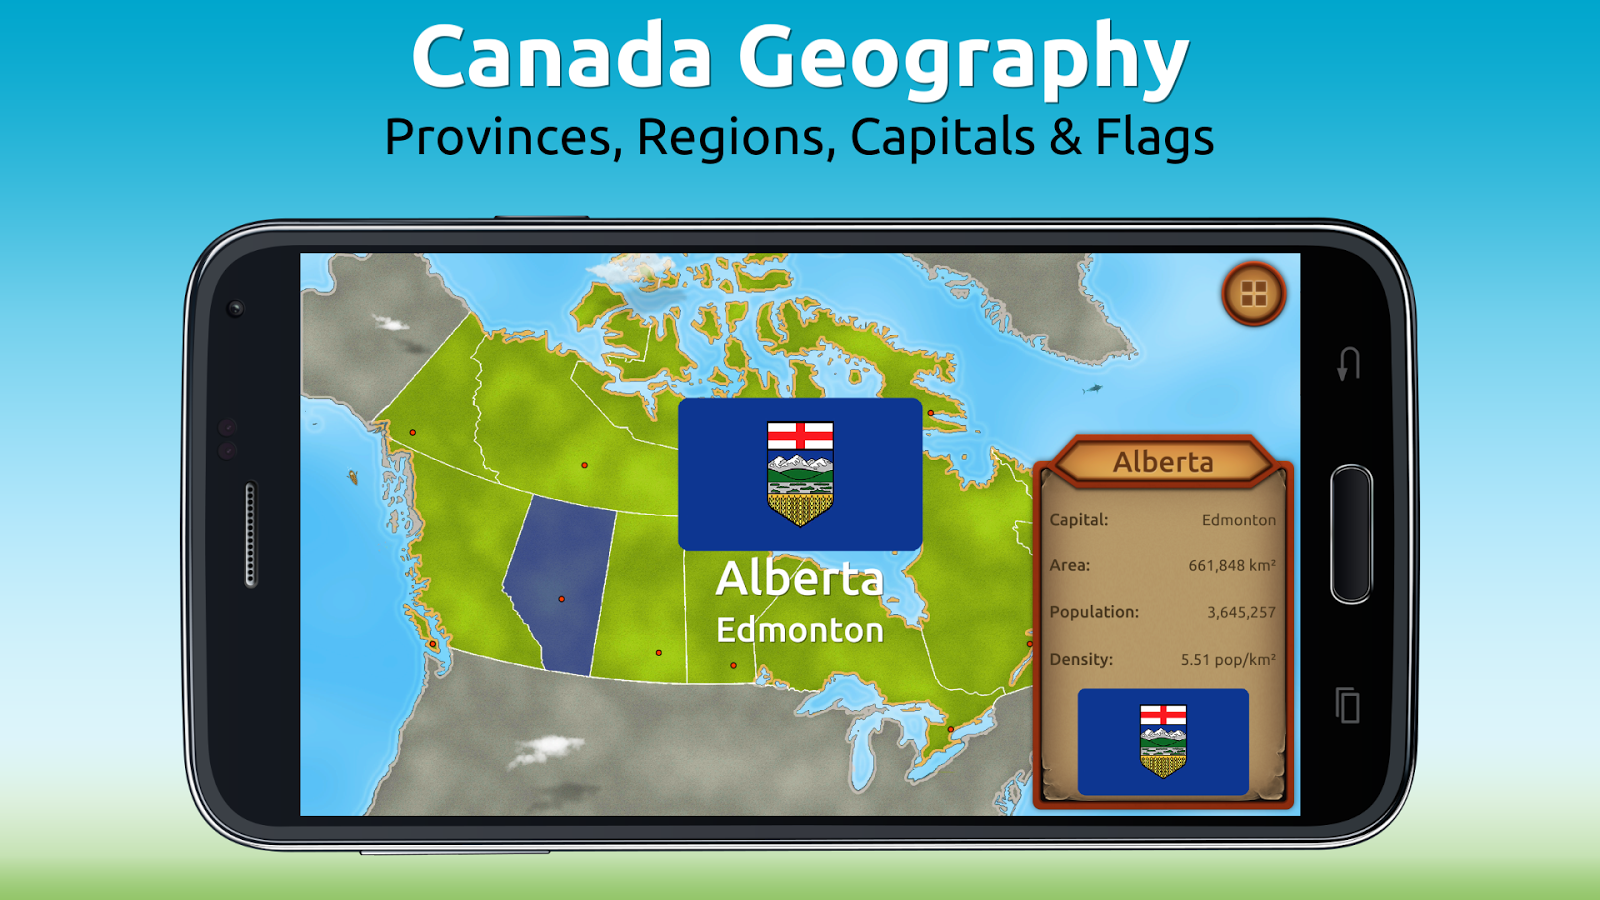 GeoExpert - Canada Geography Screenshot 0